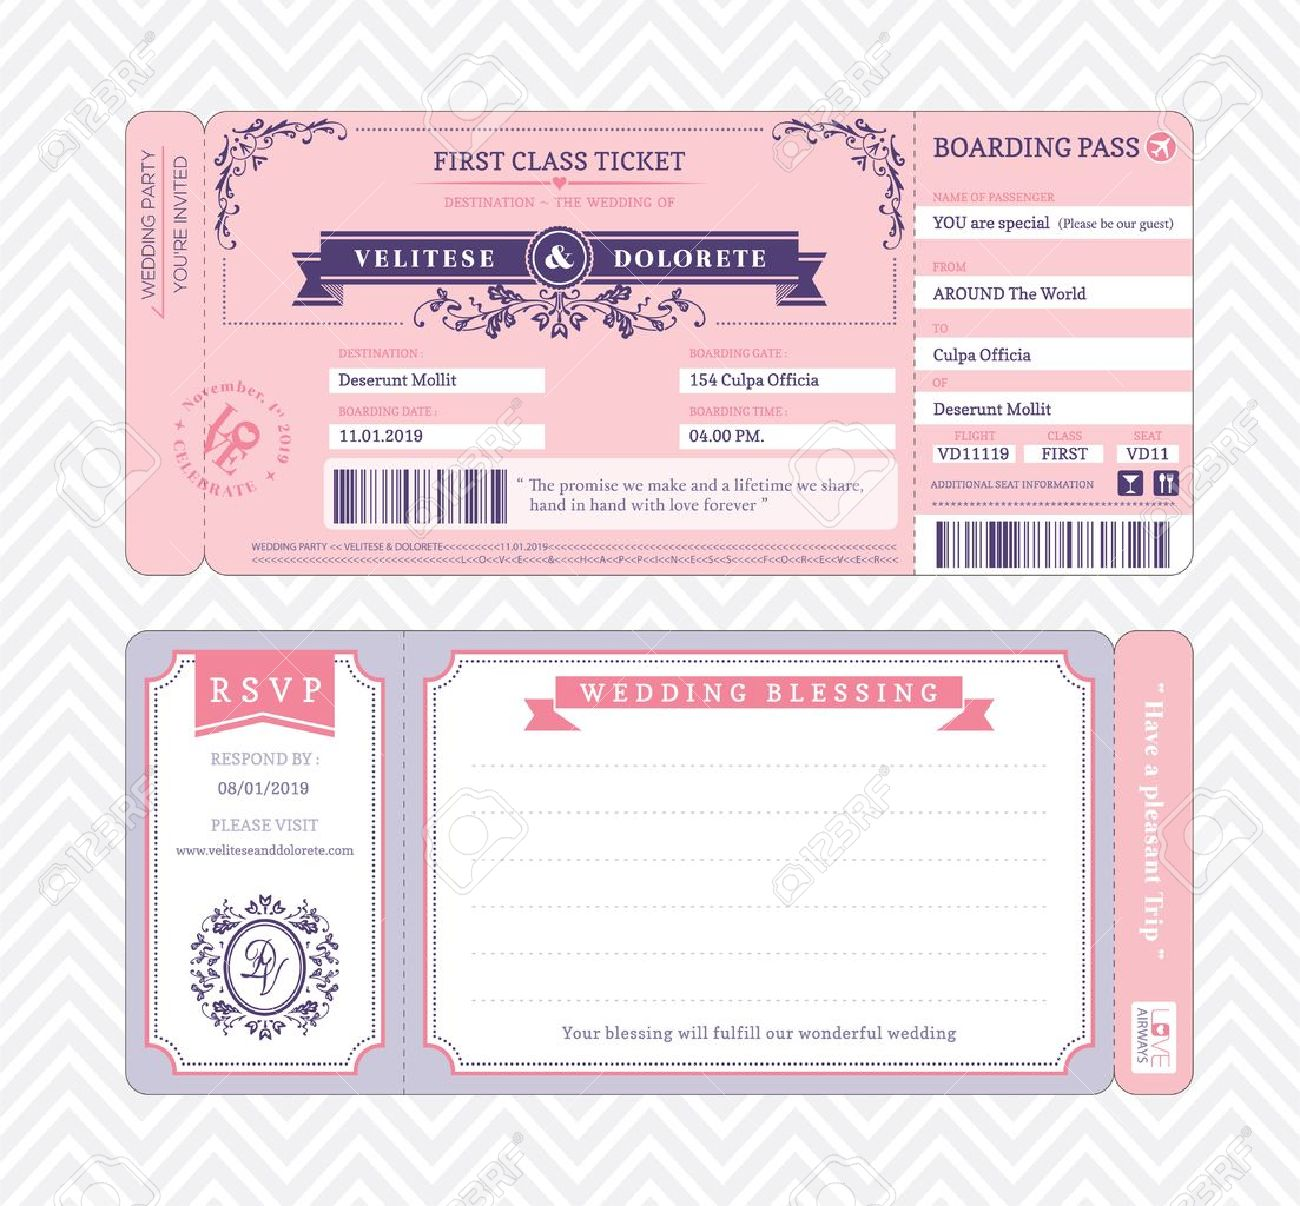 Blank Boarding Pass Wedding Invitation Template